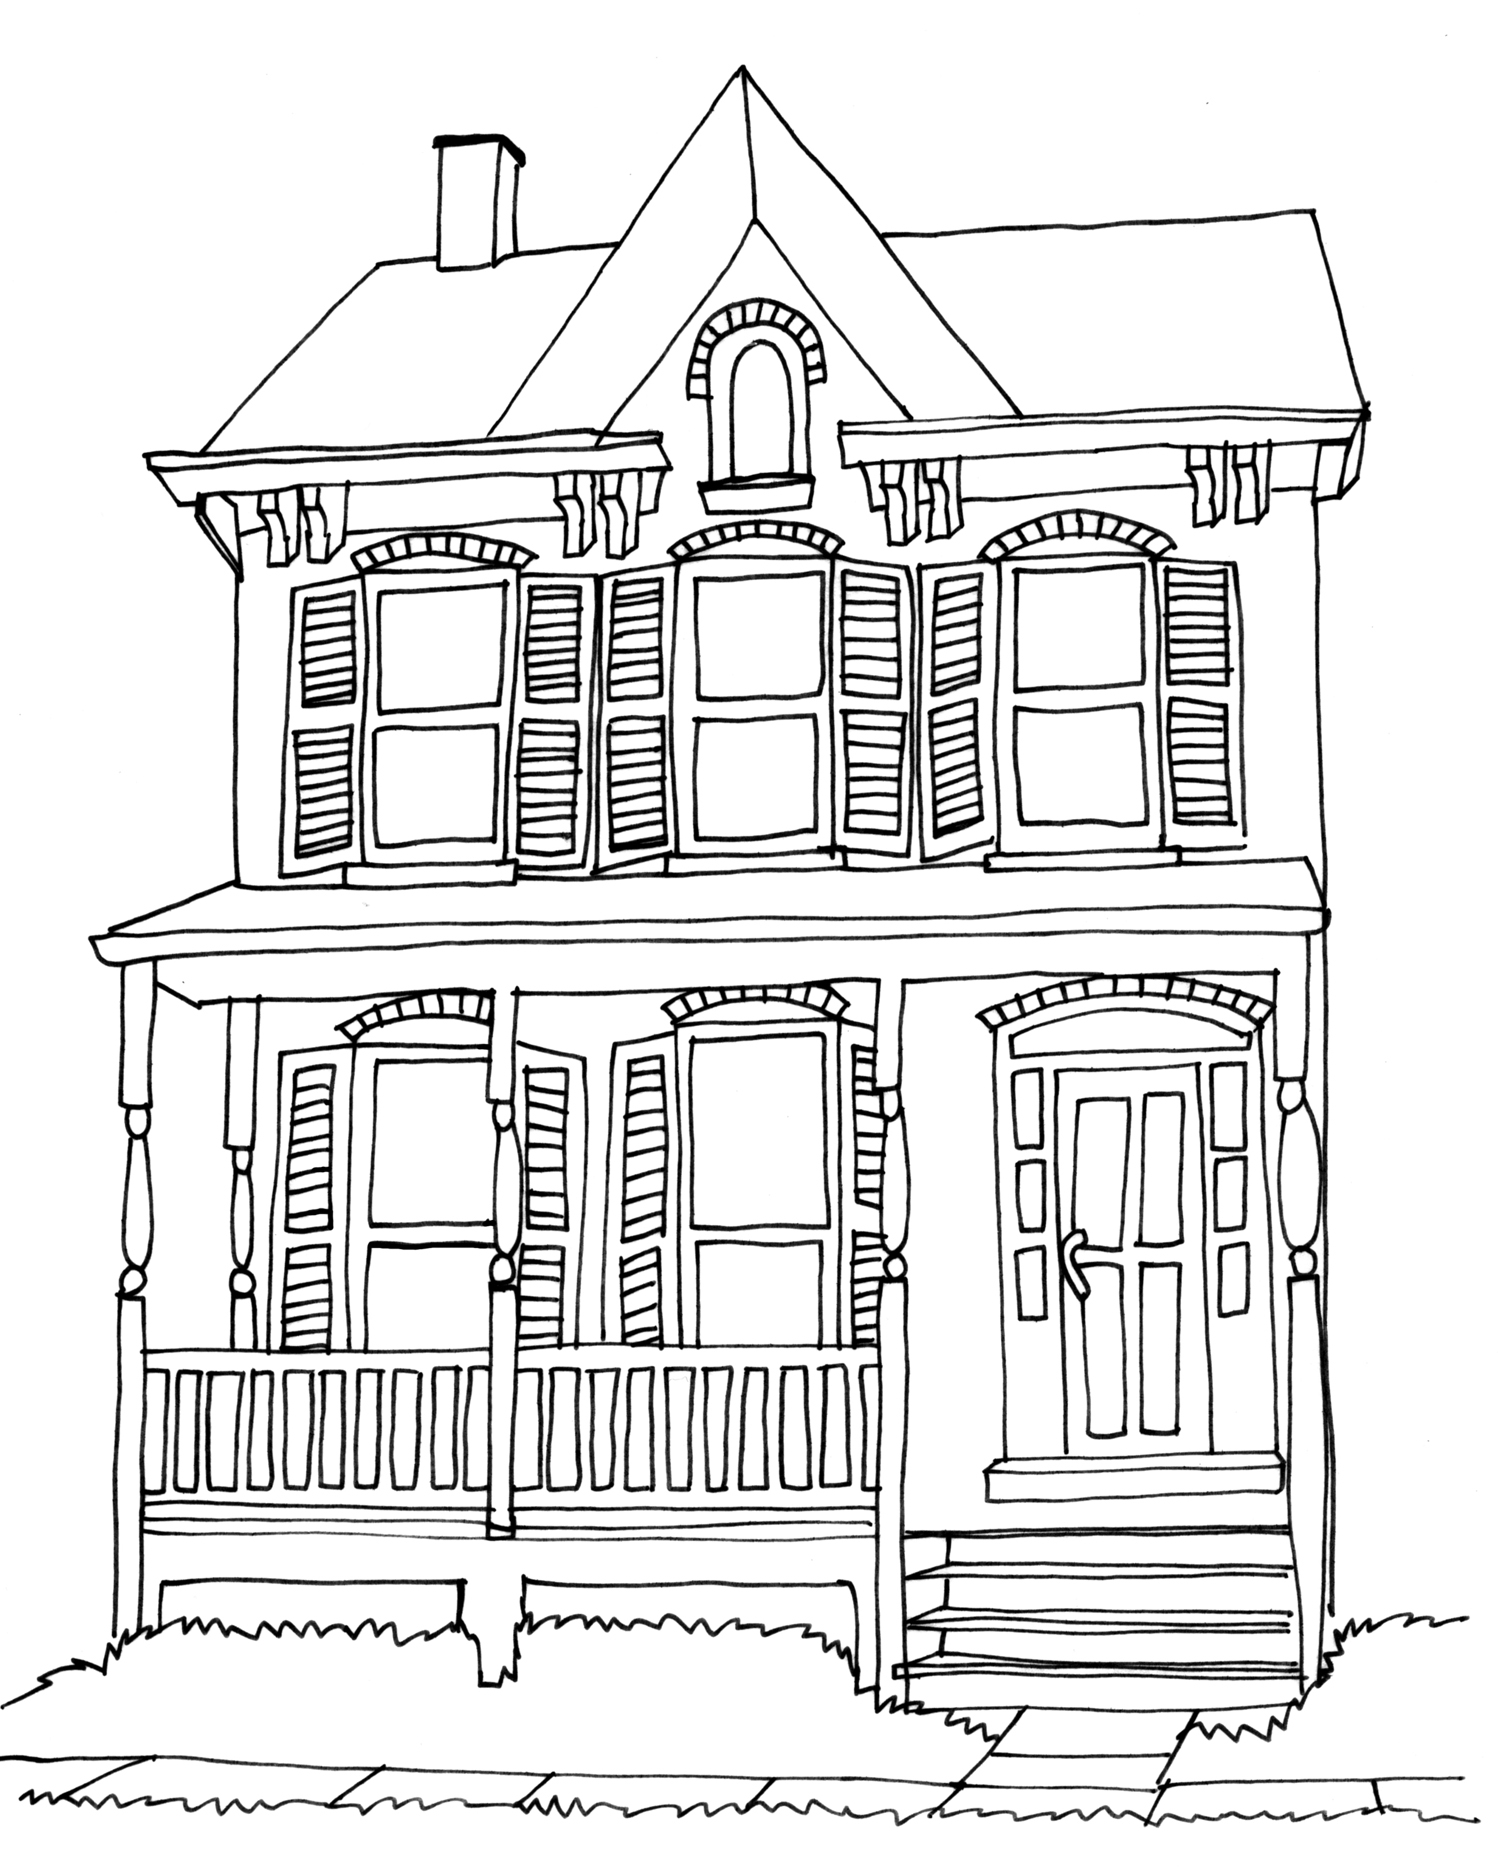 white house sketch white house drawing at getdrawings free download white house sketch